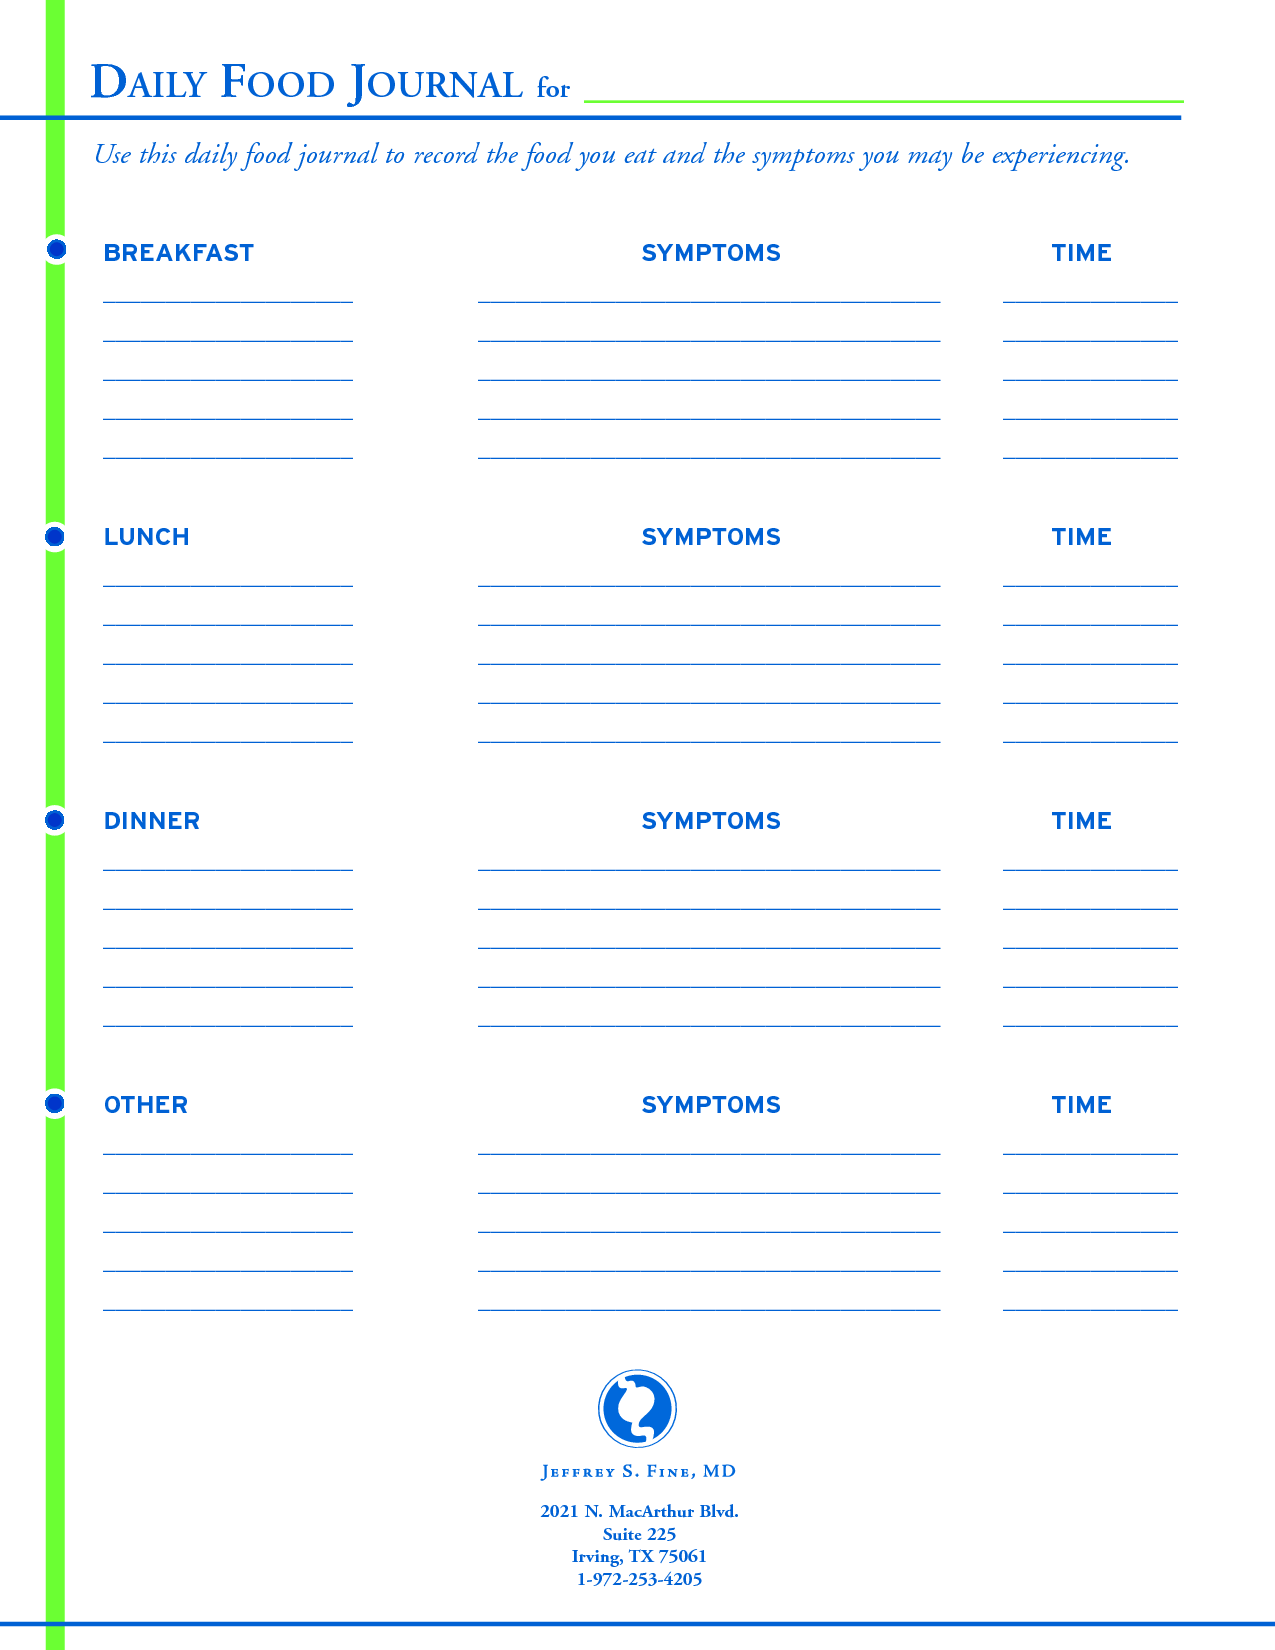 Daily Food Journal Template